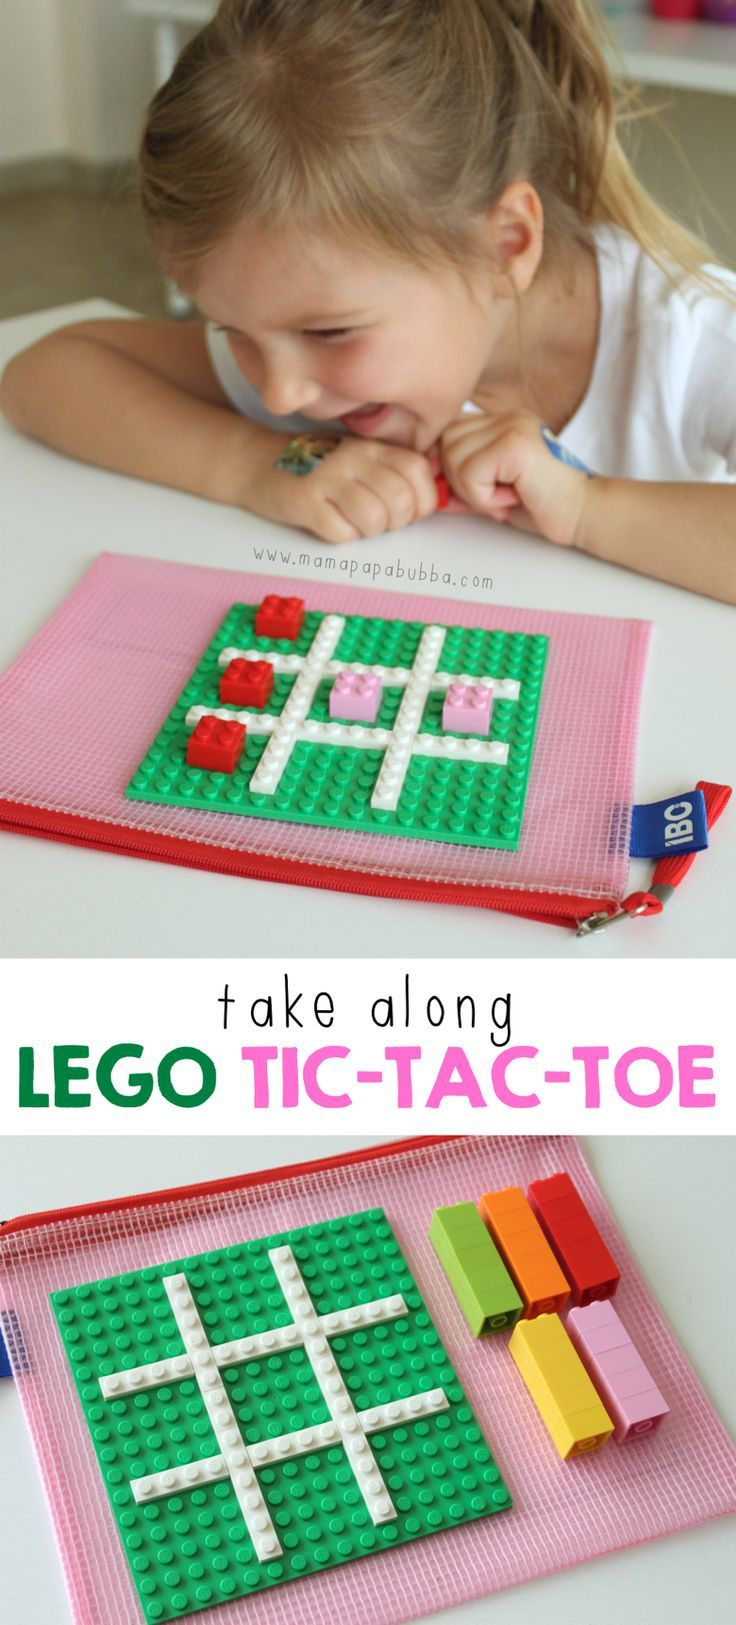 Your family will enjoy this portable LEGO tic-tac-toe board on all of your adventures. Have it on hand for waiting rooms, dinners out, and anywhere else you'll want a fun game at the ready.